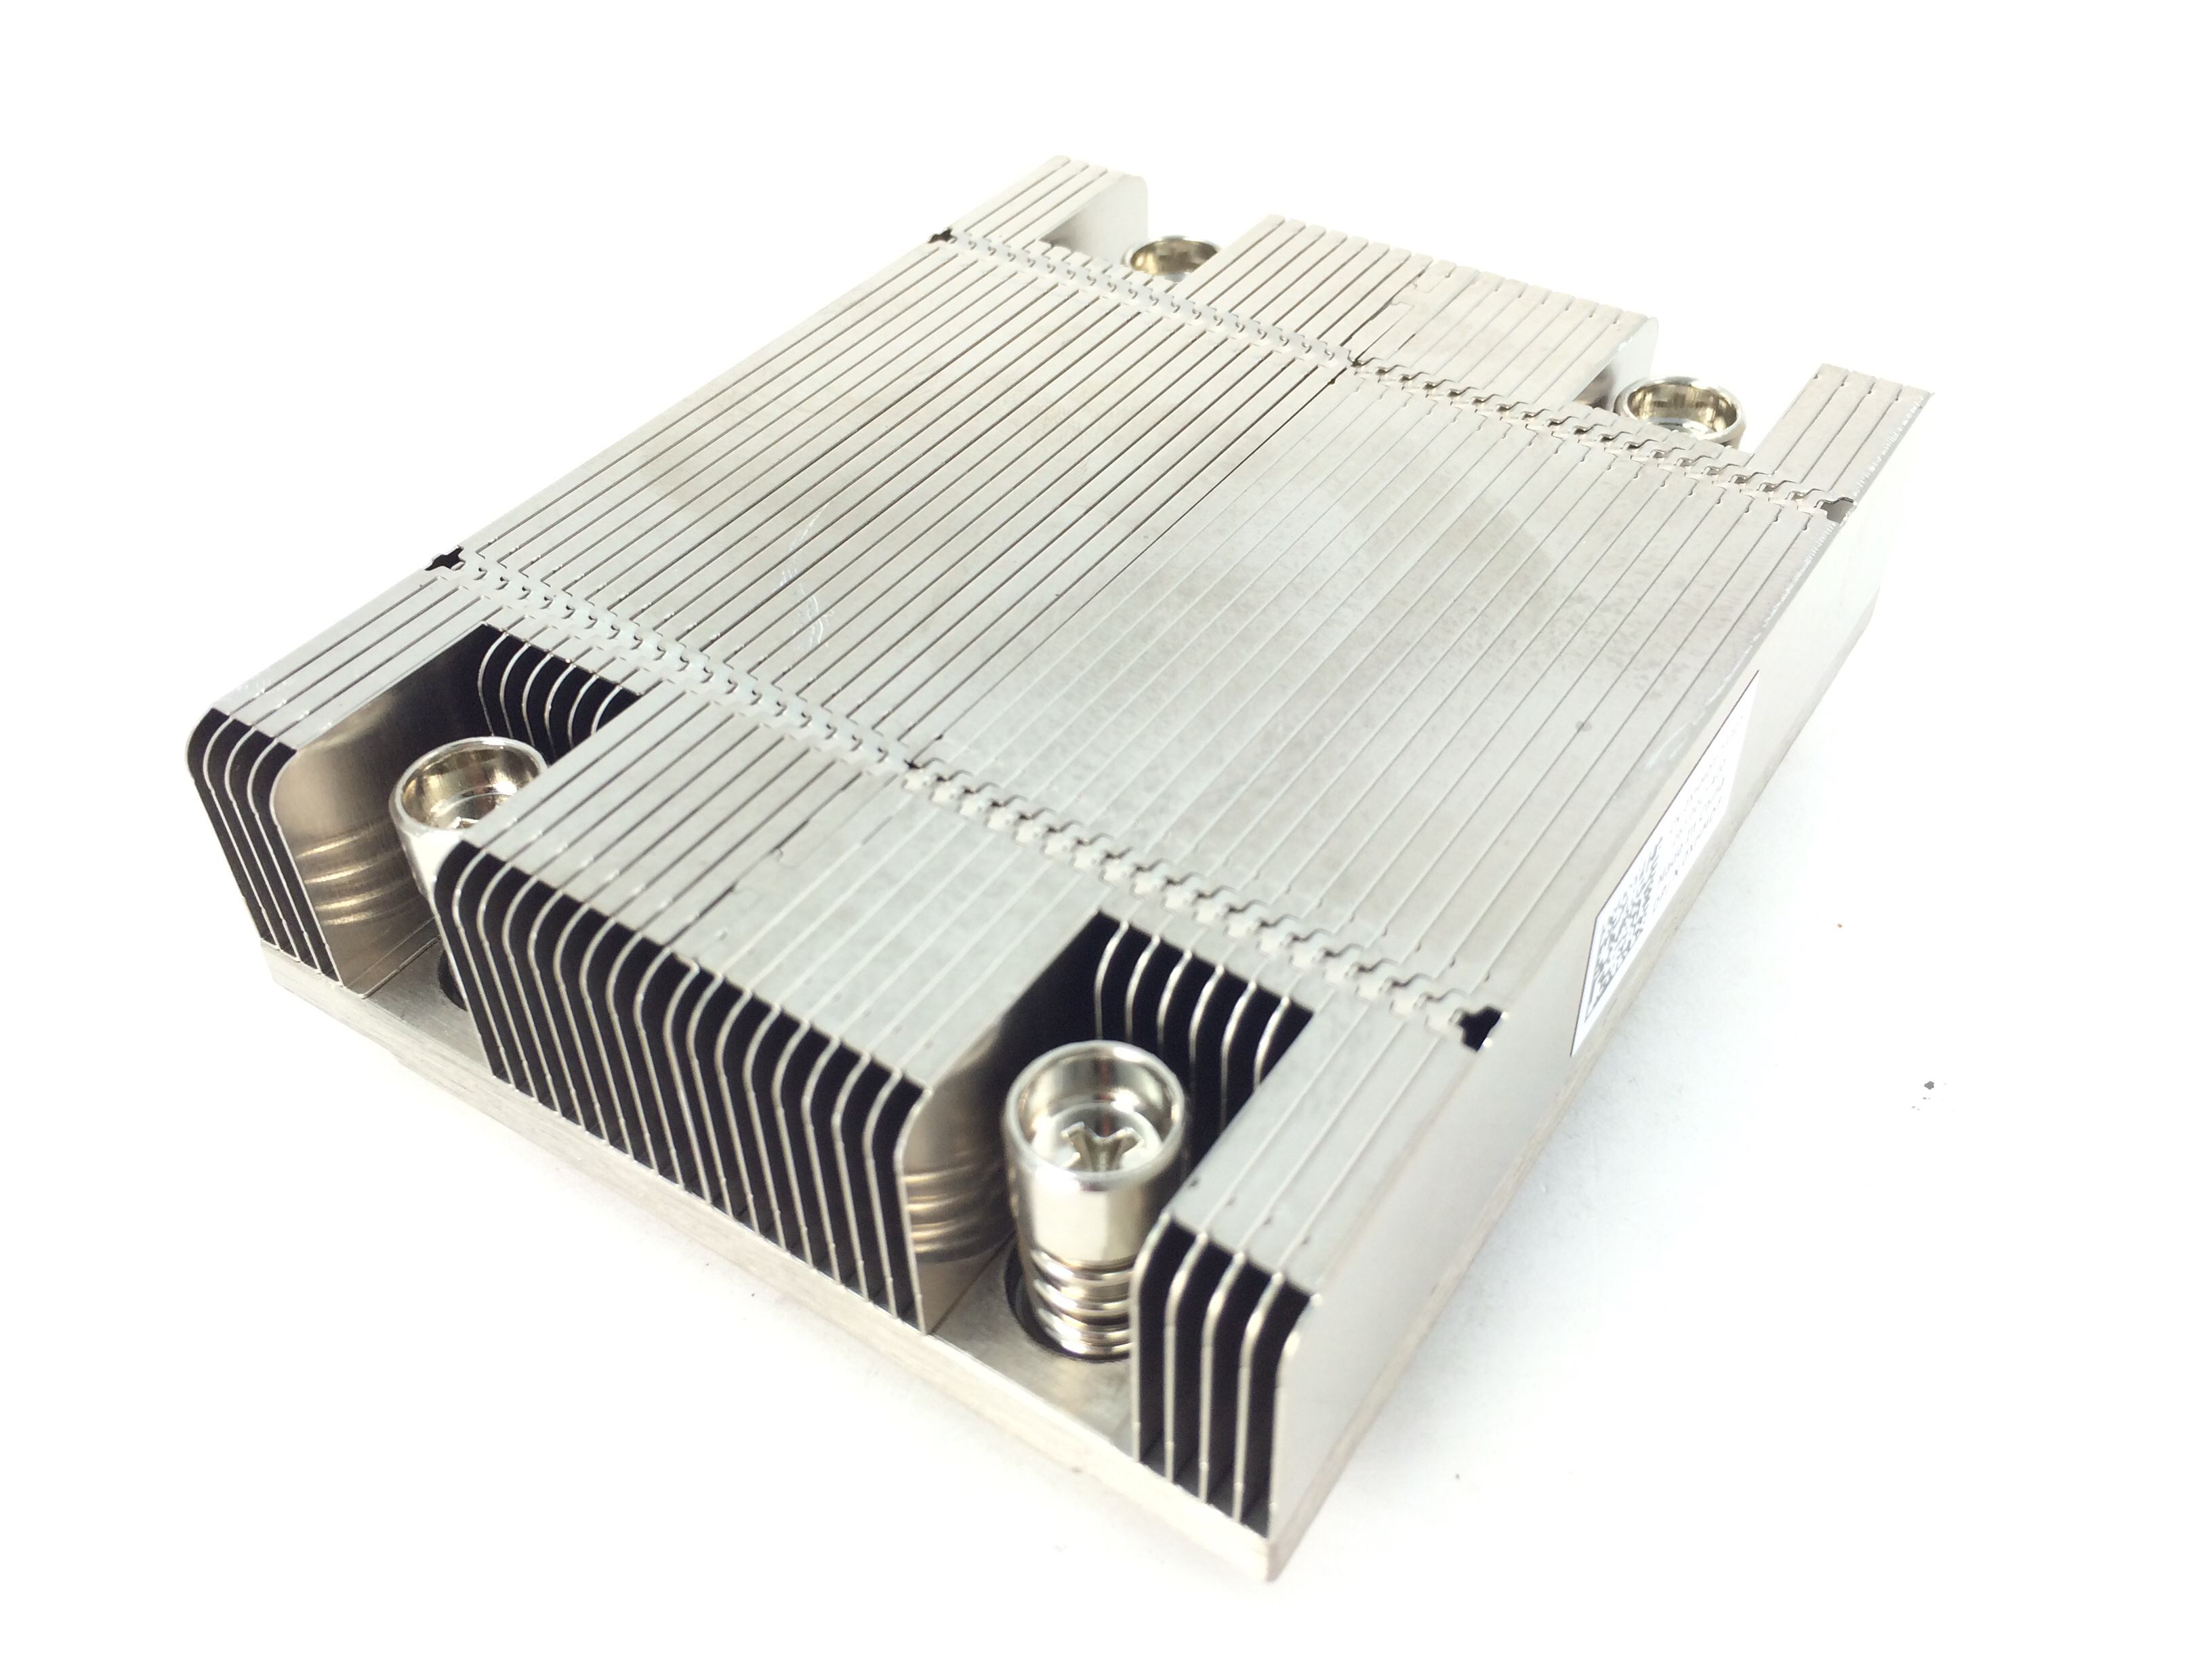 XHMDT Dell PowerEdge R420 R520 Heatsink (XHMDT)